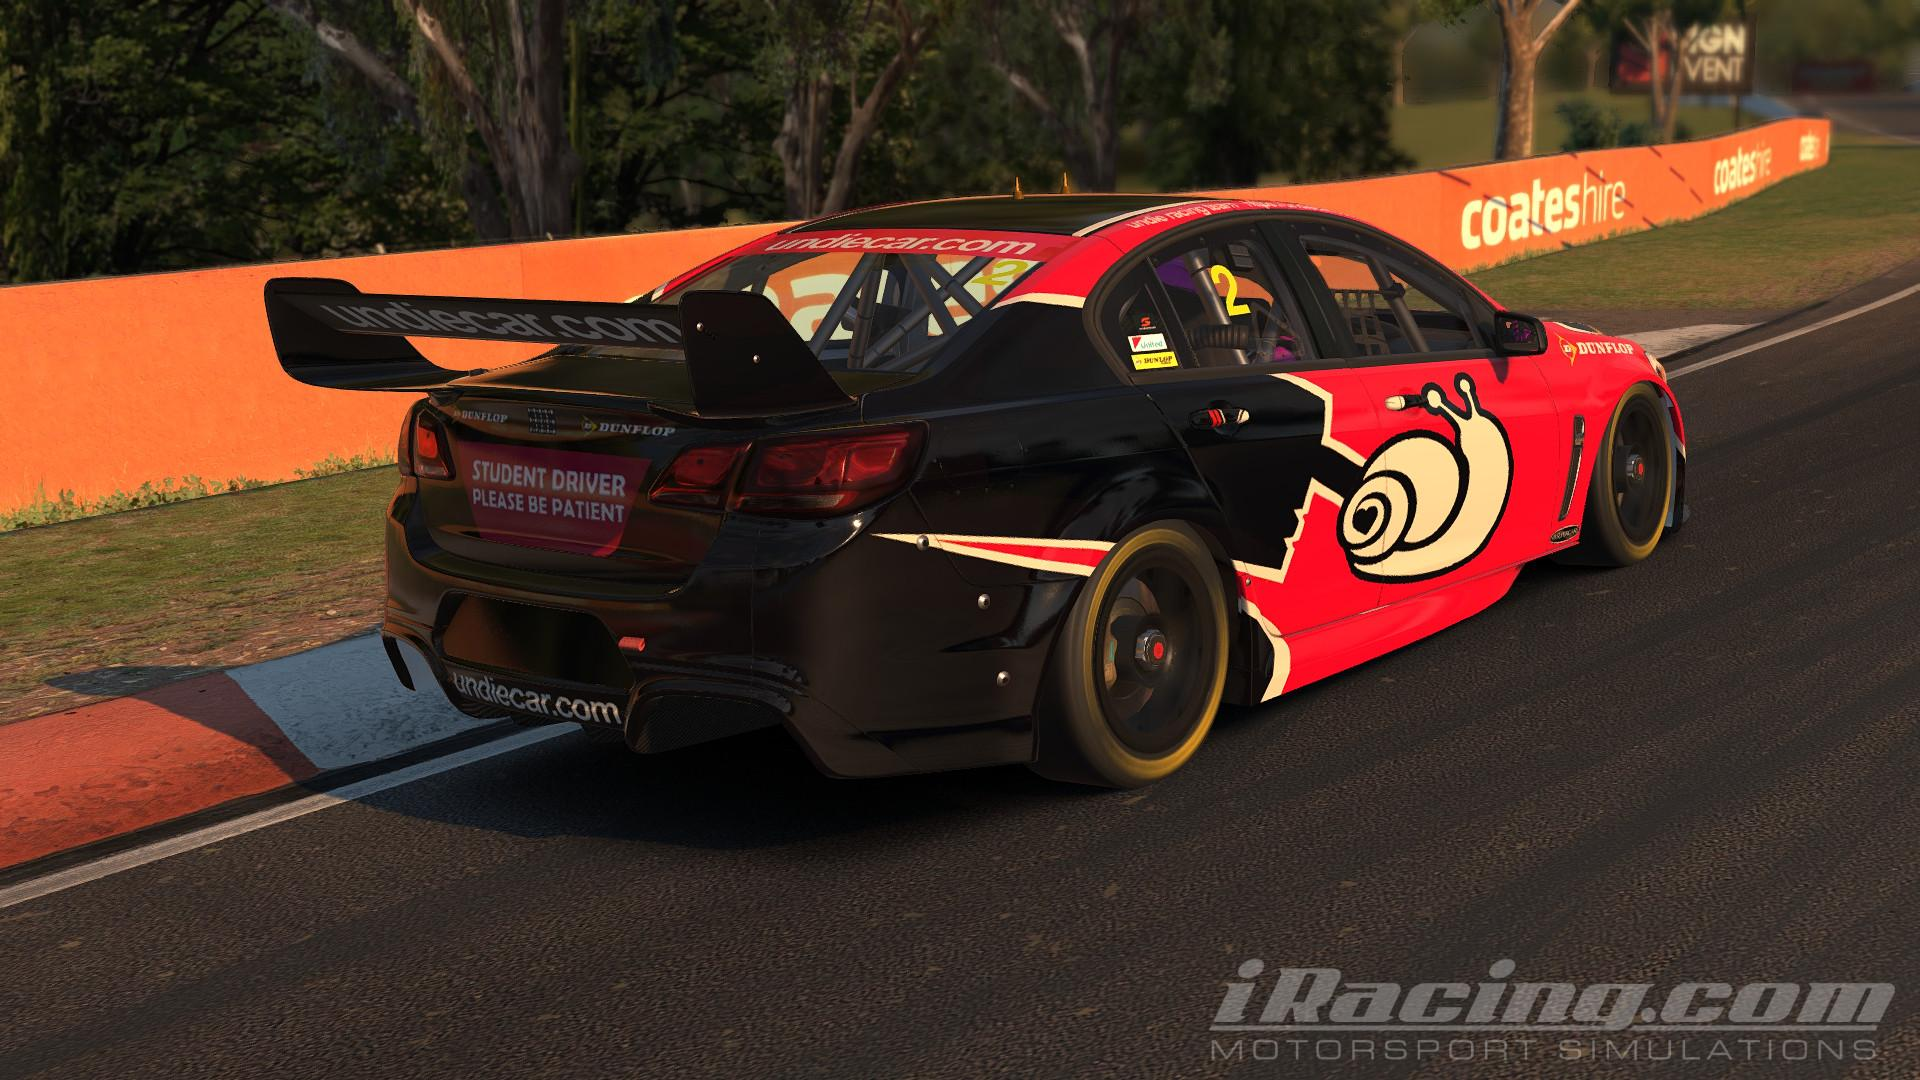 Preview of Undiecar Commodore by Ryan Hellyer